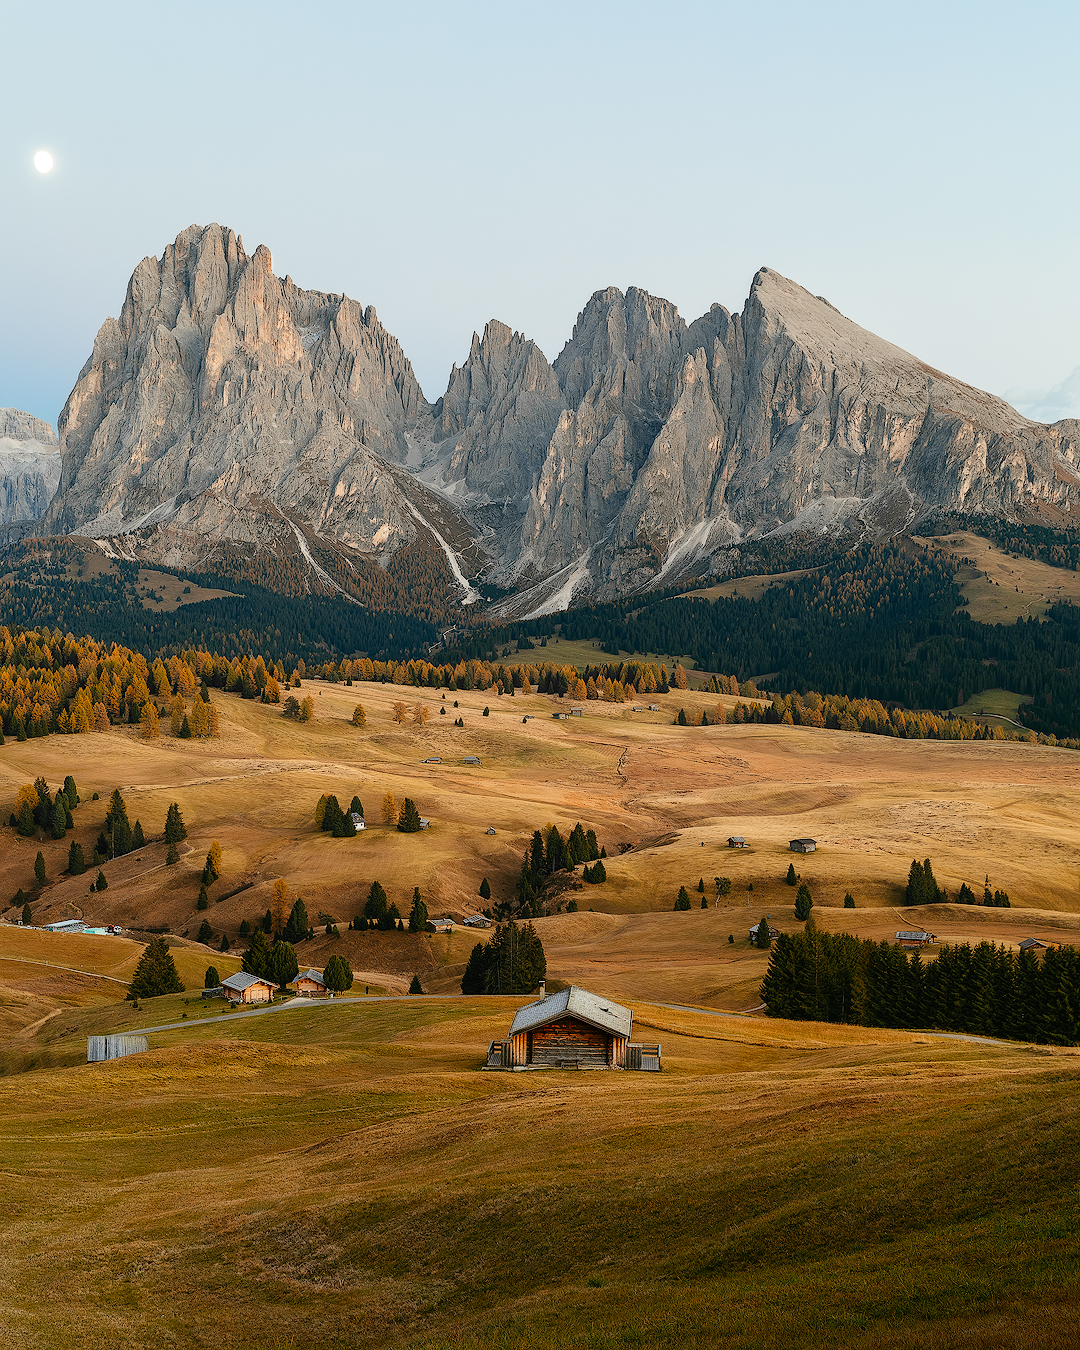 Edited version of the image from Alpe di Siusi